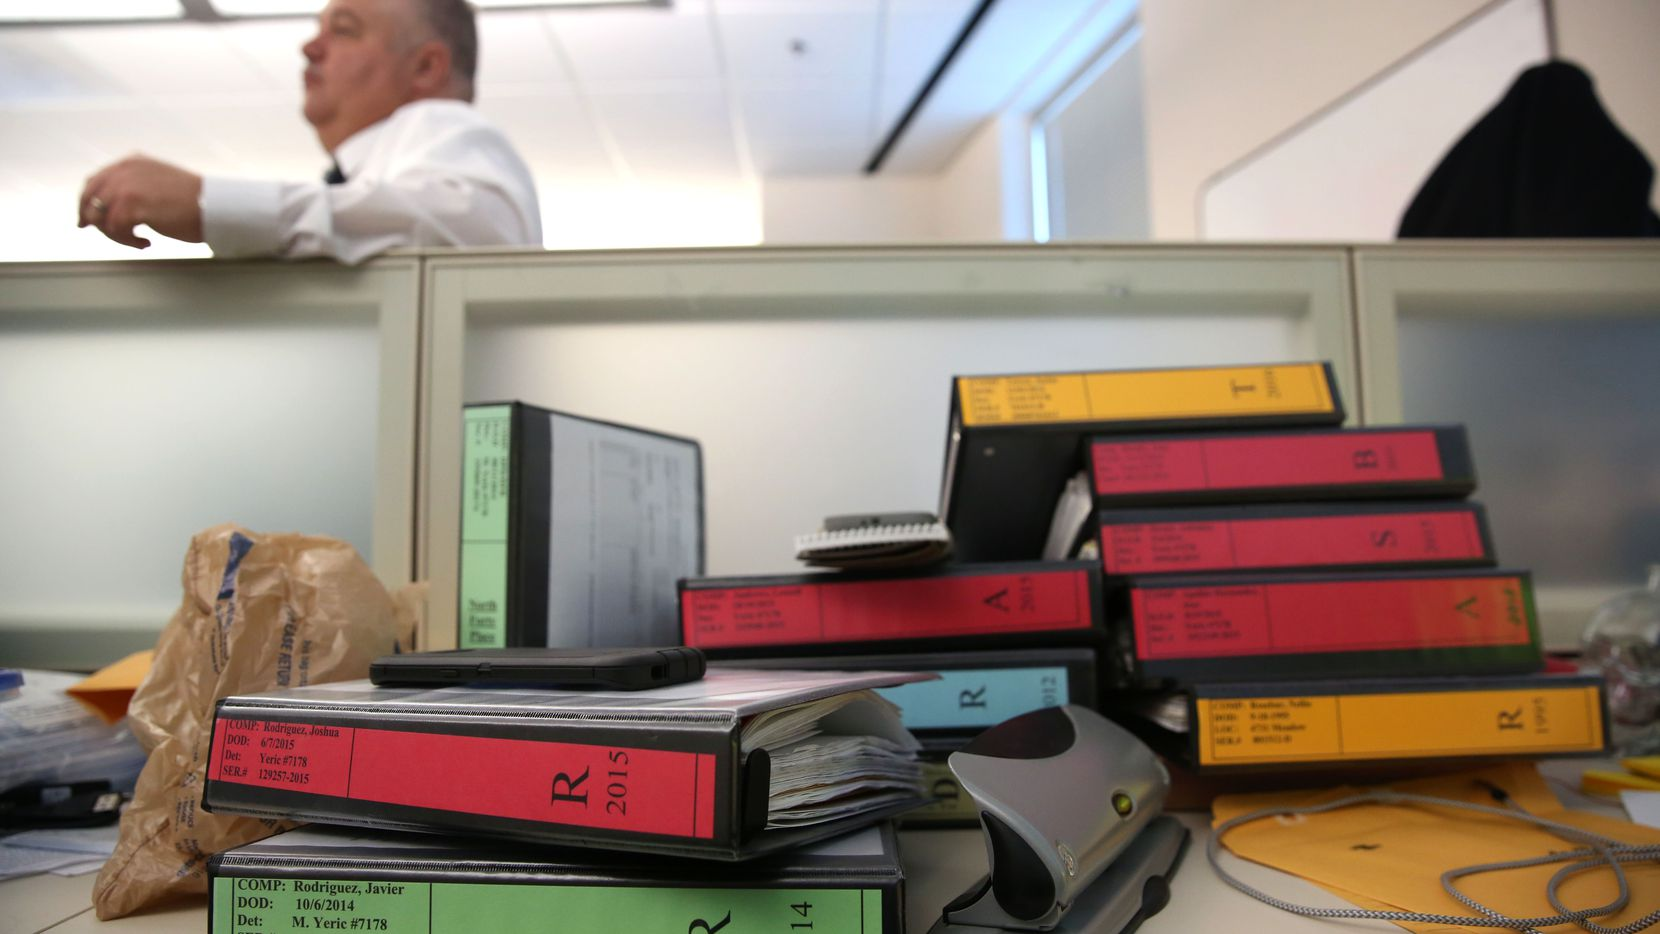 Cold case files are stacked on the desk of Det. Michael Yeric at Dallas Police Department headquarters in Dallas on Thursday, Jan. 5, 2016. (Rose Baca/The Dallas Morning News)